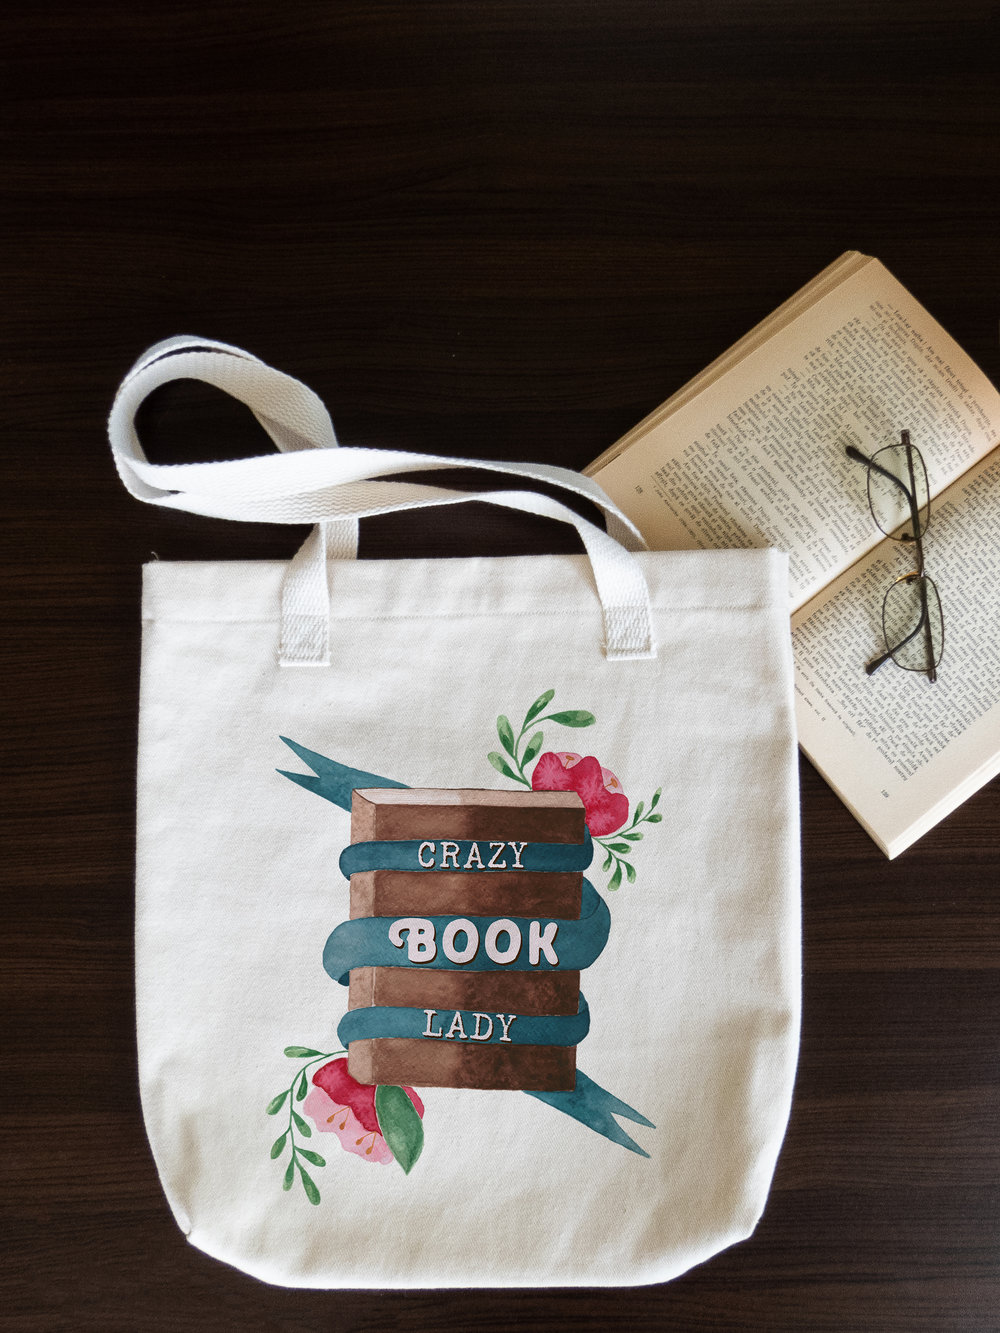 Crazy book lady tote bag with book.jpg